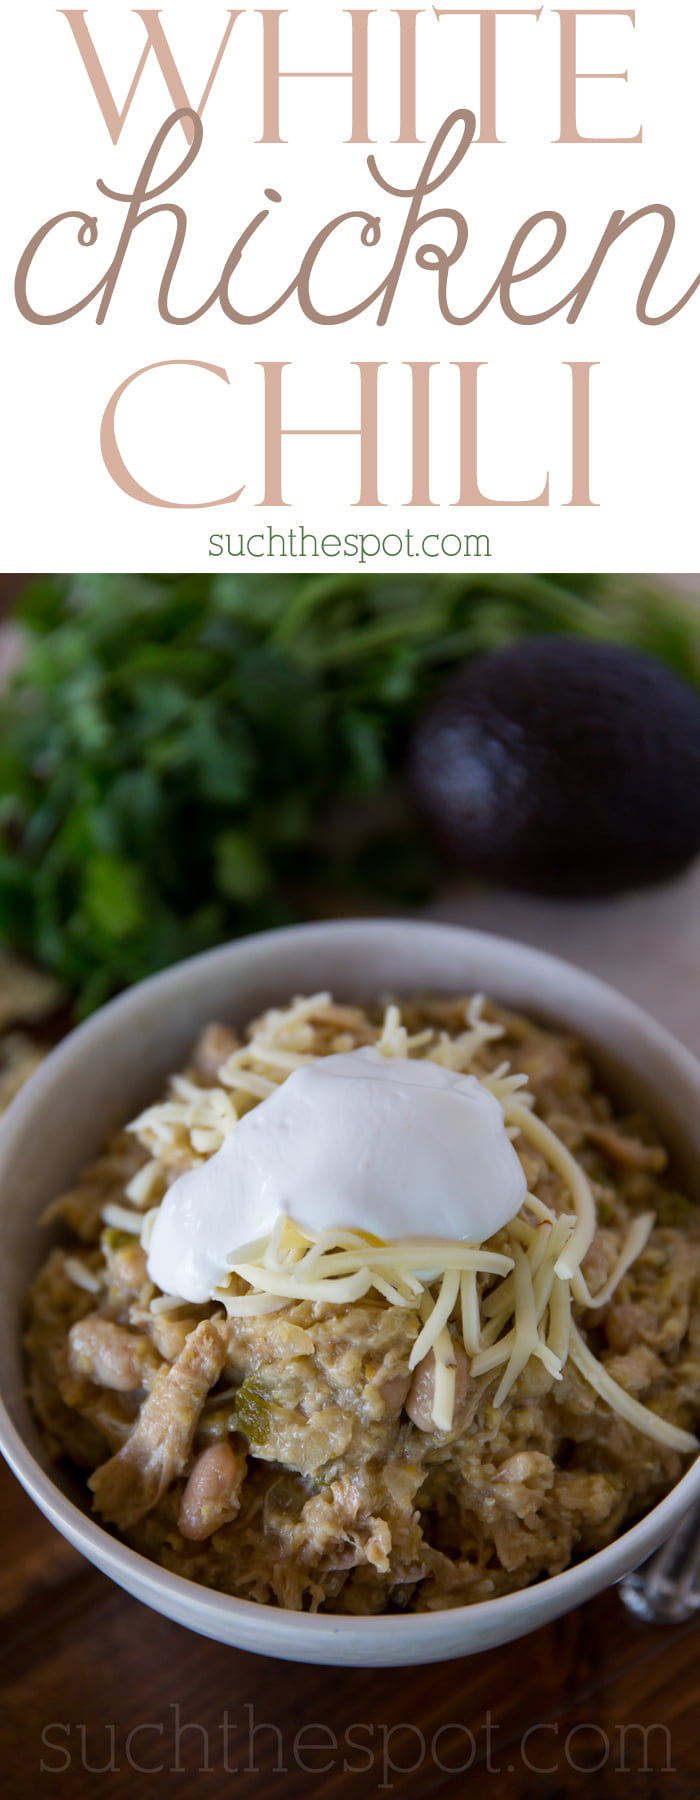 Crock-pot white chicken chili